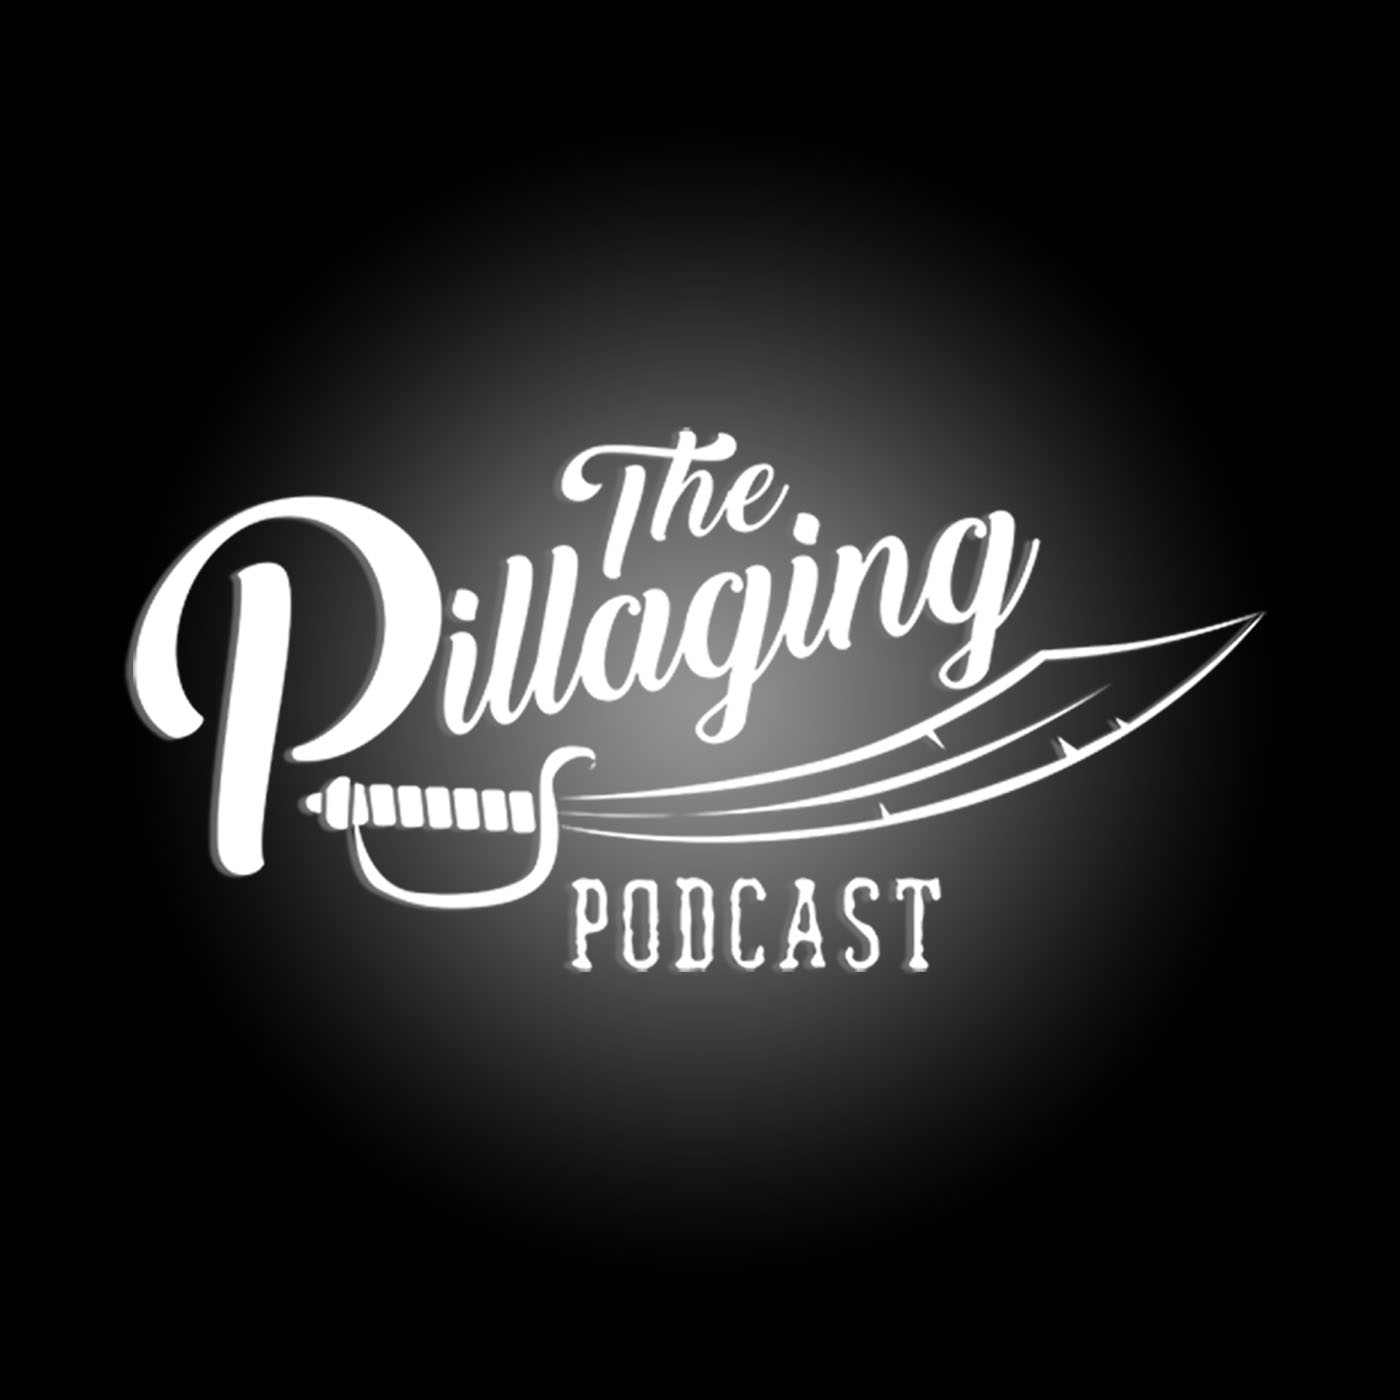 The Pillaging Podcast show art